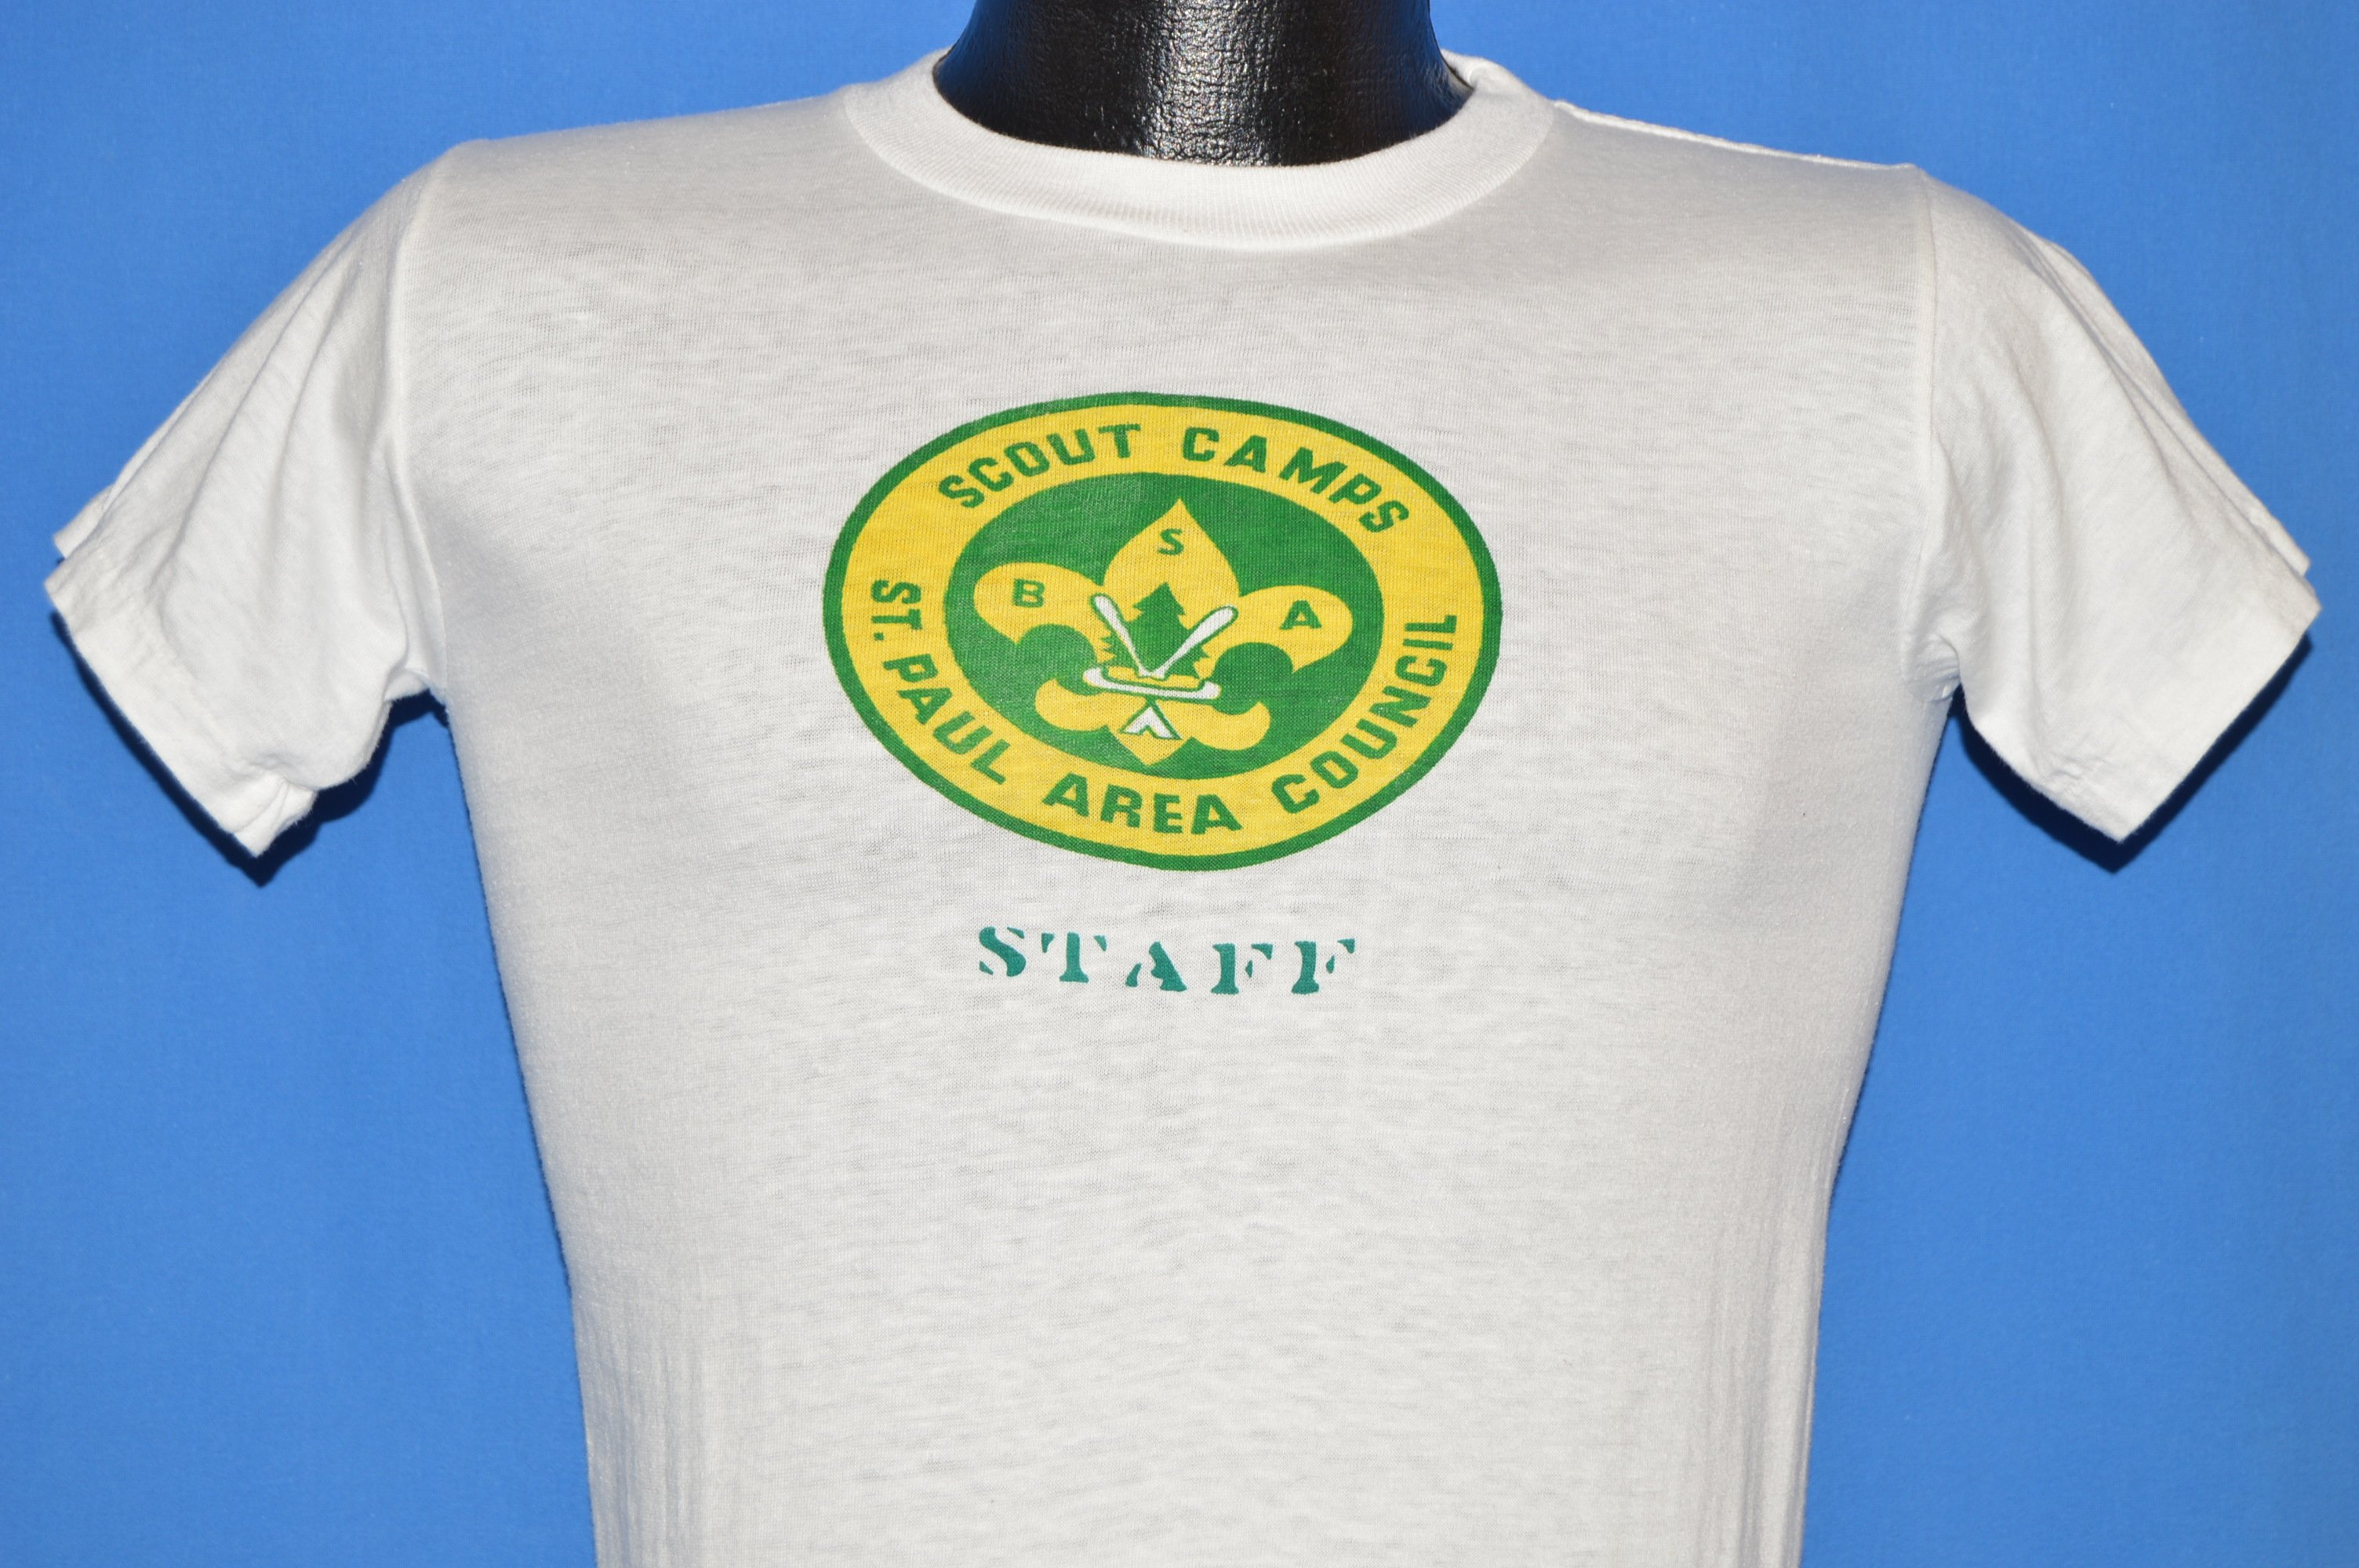 Boy scout tee shirt designs clipart graphic library library Boy Scout Tee Shirts - Nils Stucki Kieferorthopäde graphic library library